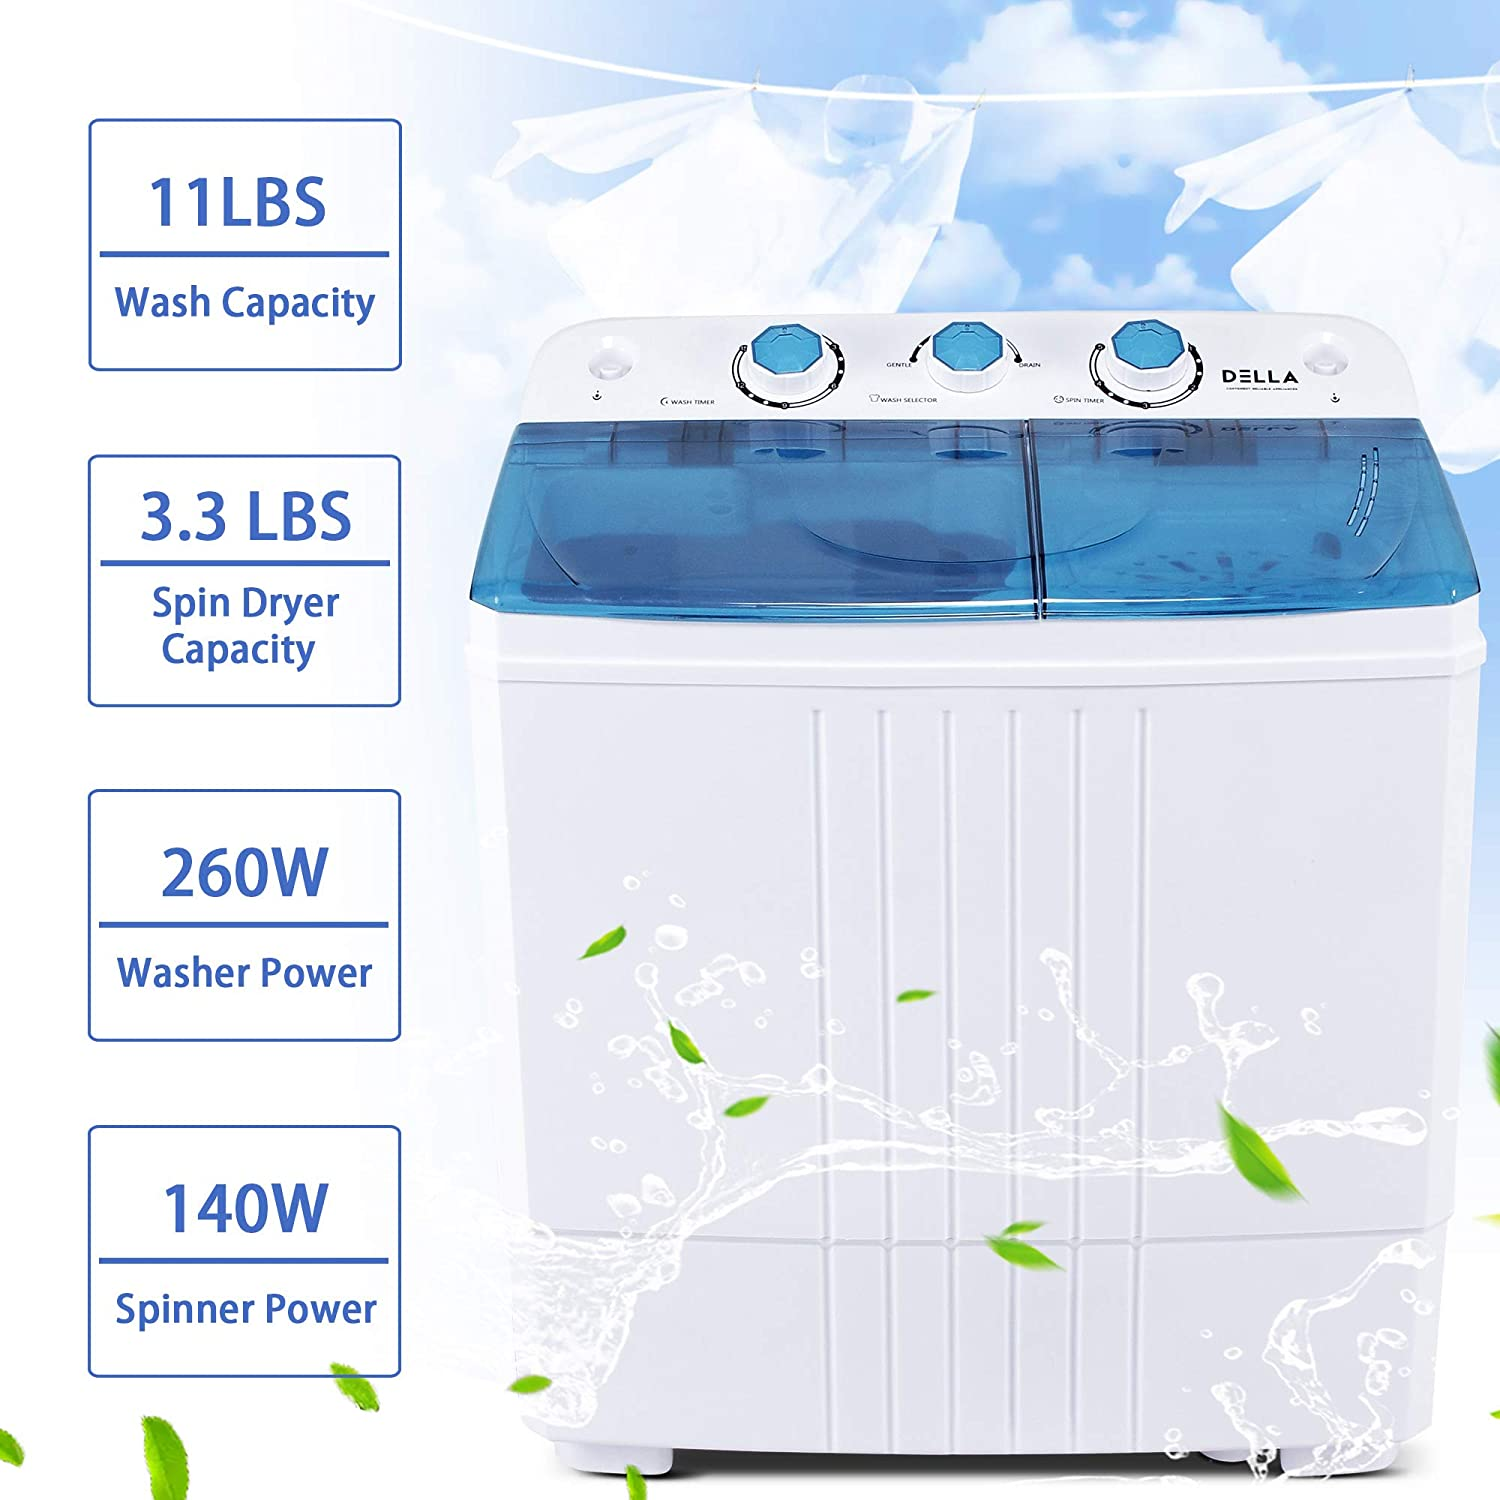 Della Small Compact Portable Washing Machine Top Load Laundry Washer with Spin & Dryer, 11lbs Capacity White Blue